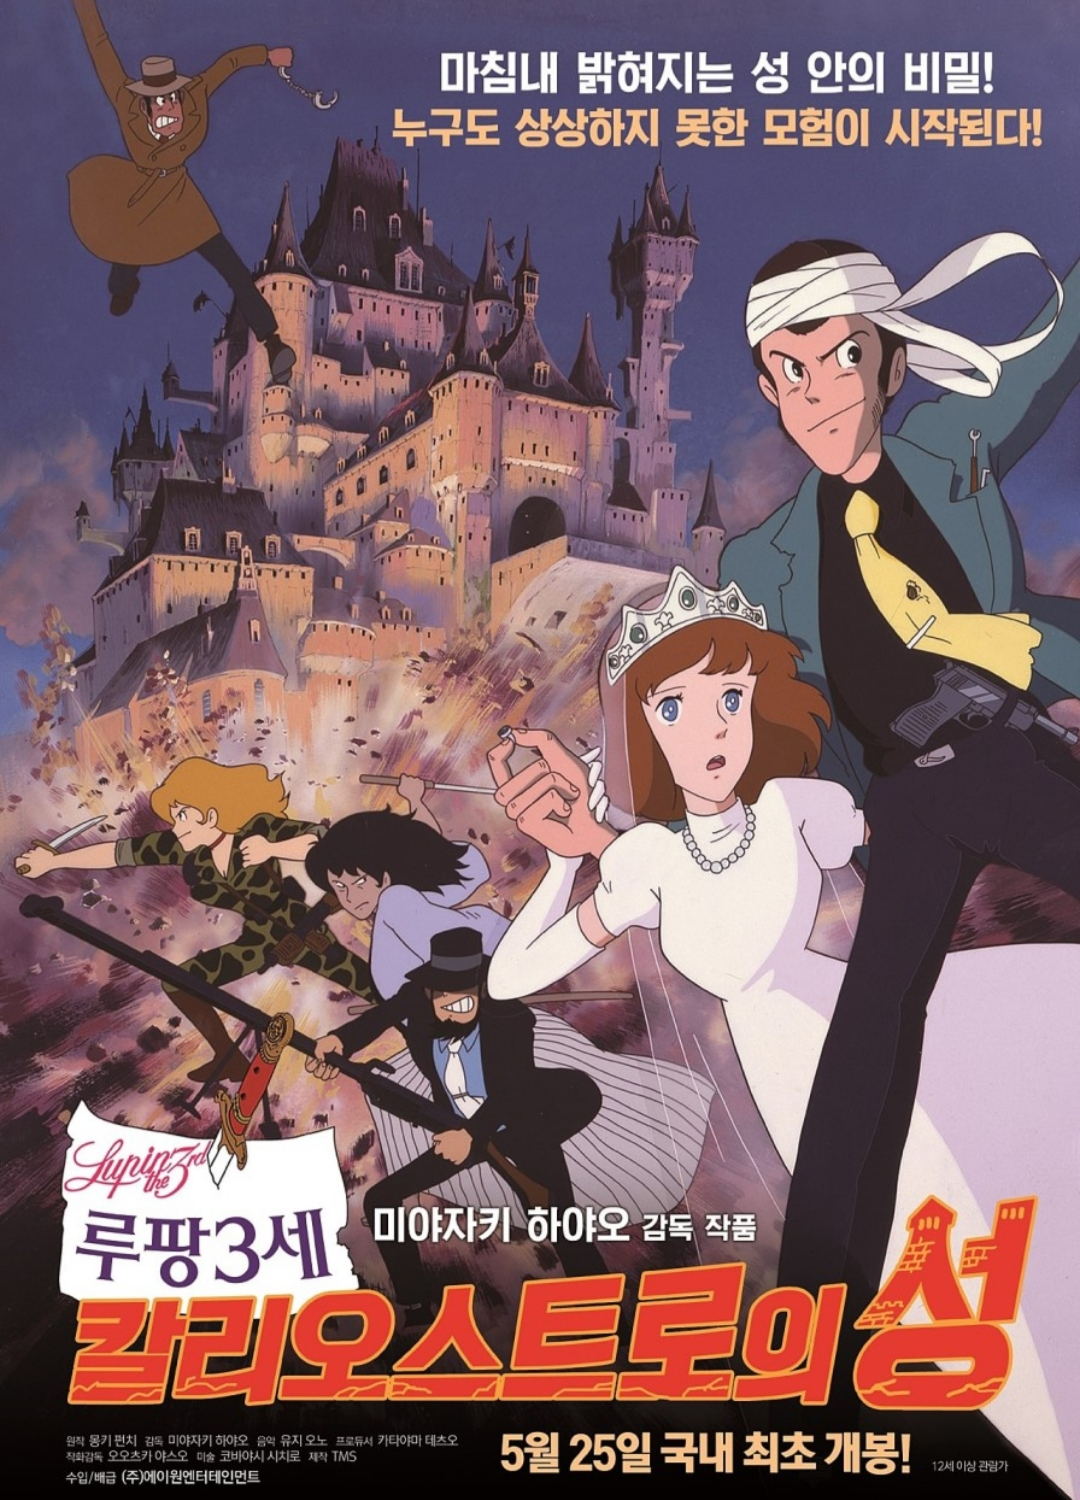 Lupin the 3rd: Castle of Cagliostro ルパン三世:カリオストロの城 (1979)